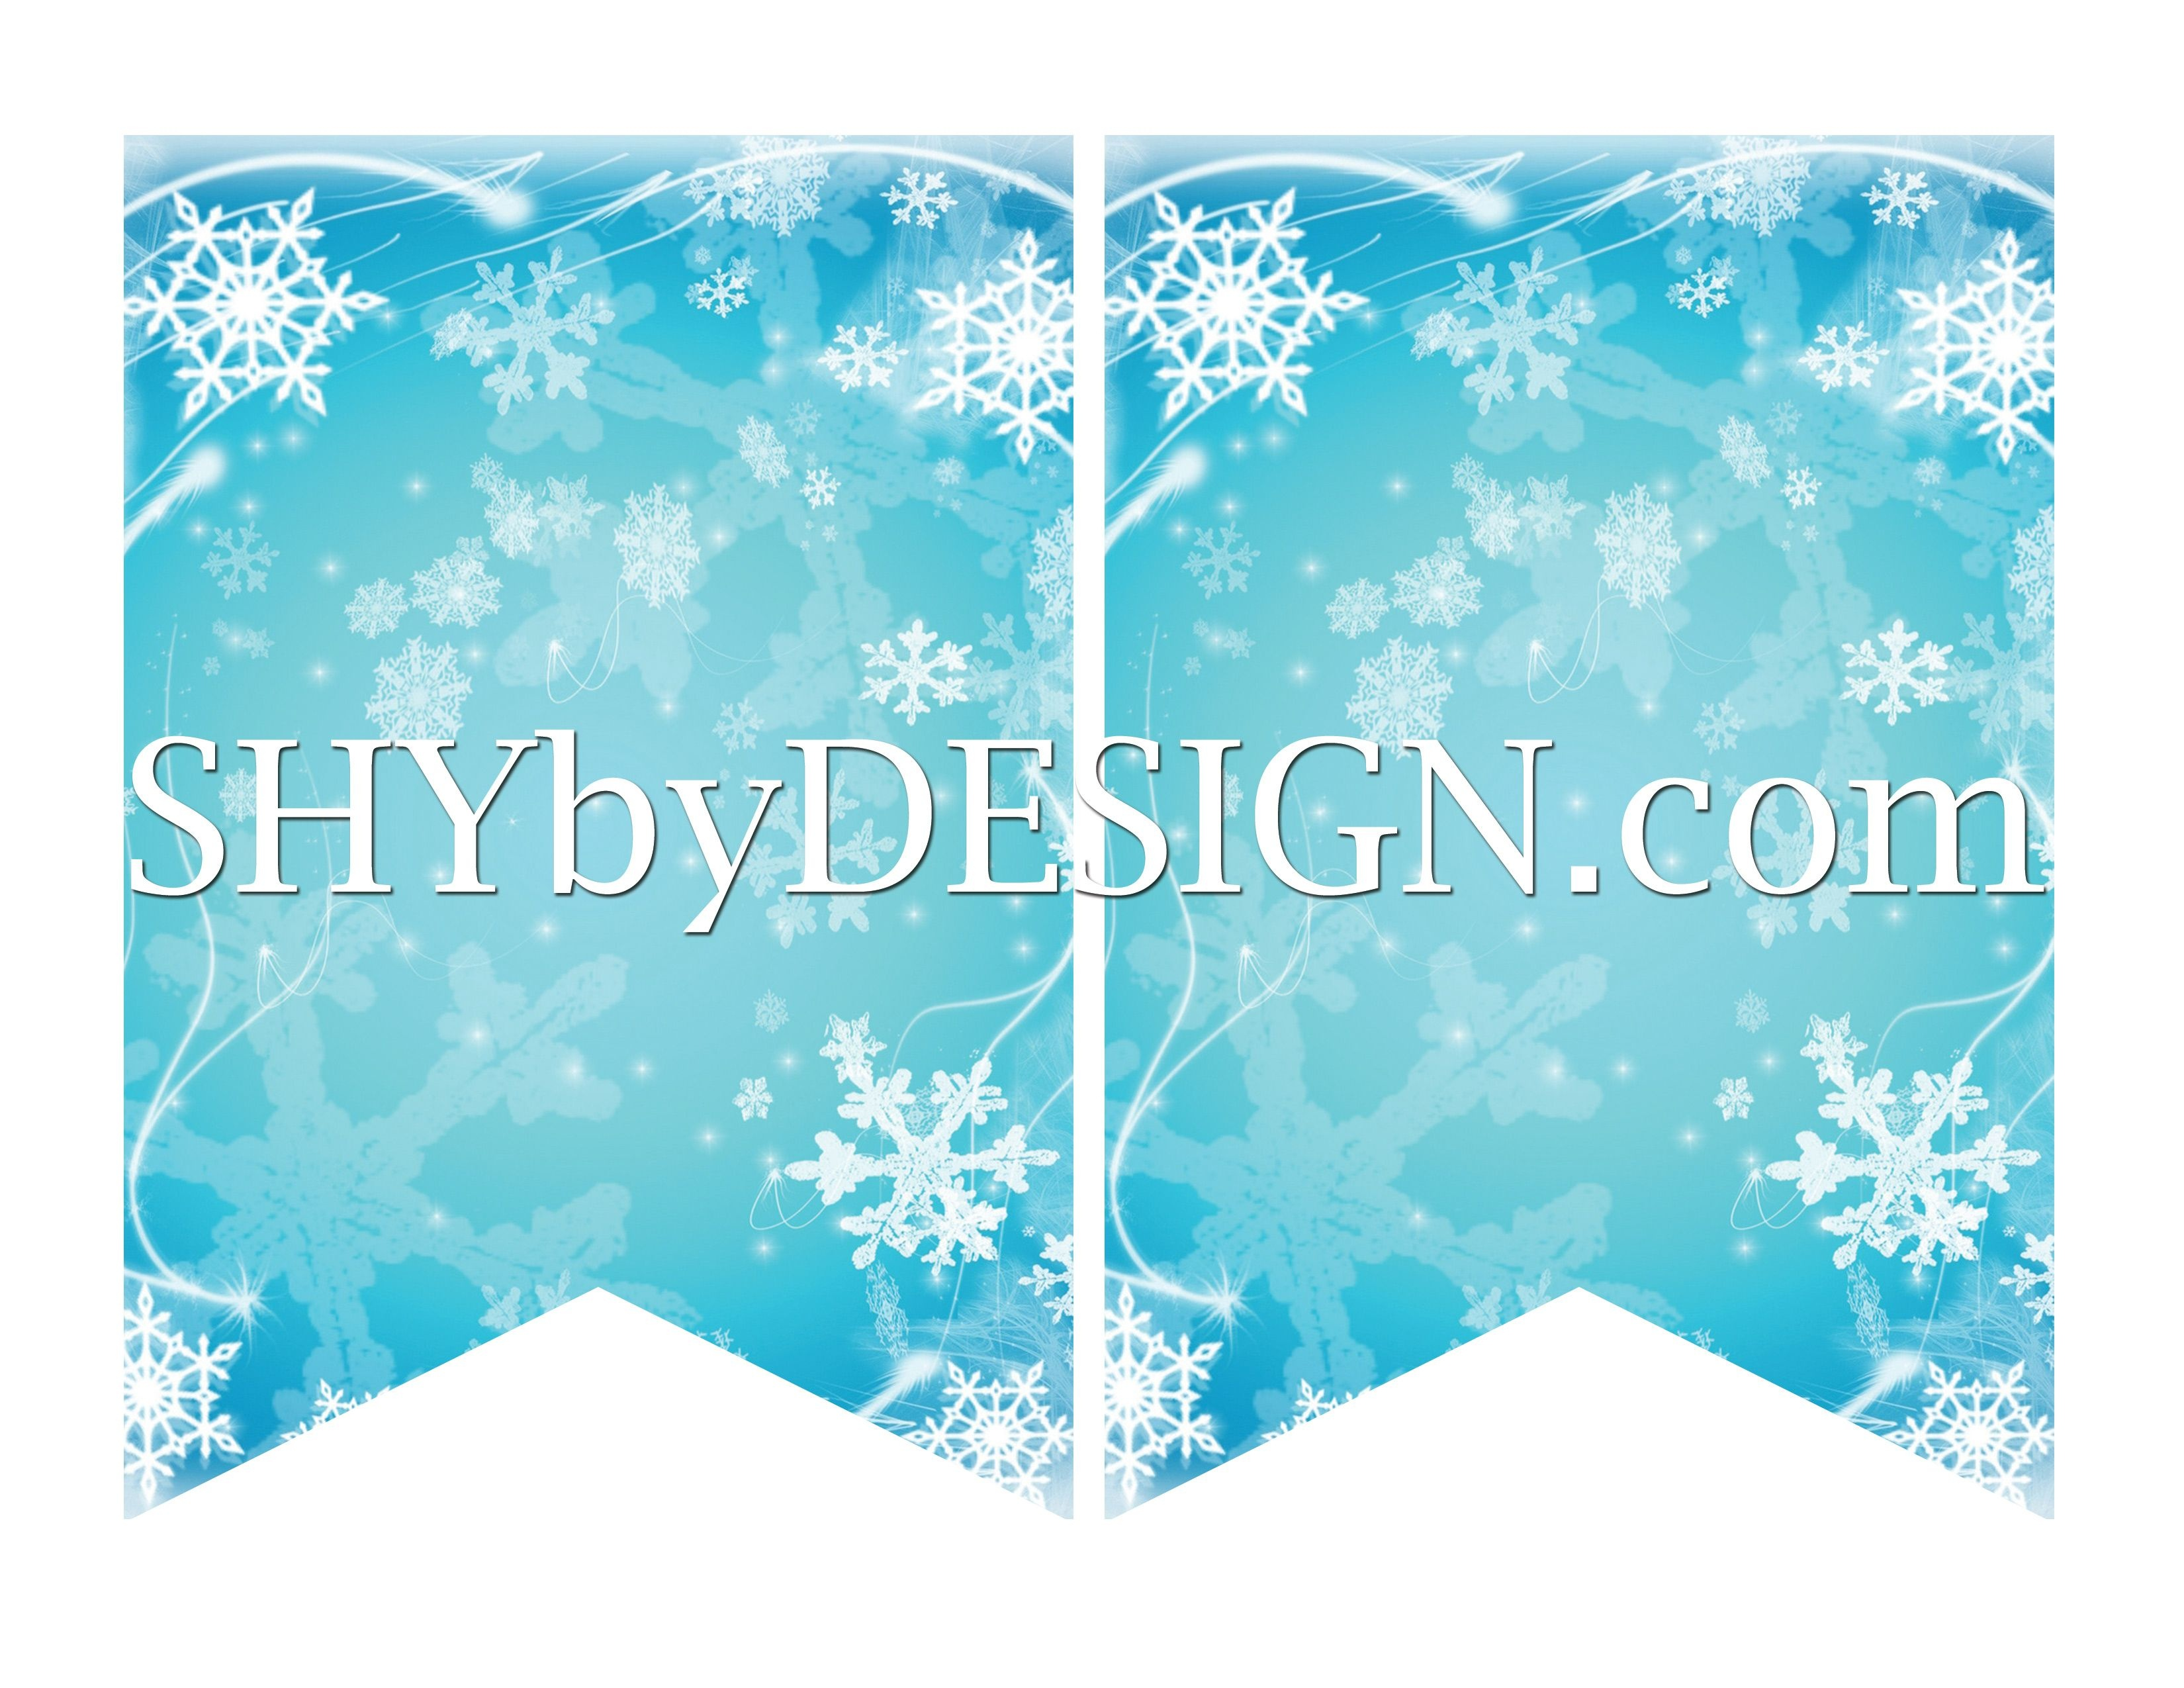 Diy Printable Frozen Banner & Your Own Letters From Shybydesign - Frozen Birthday Banner Printable Free